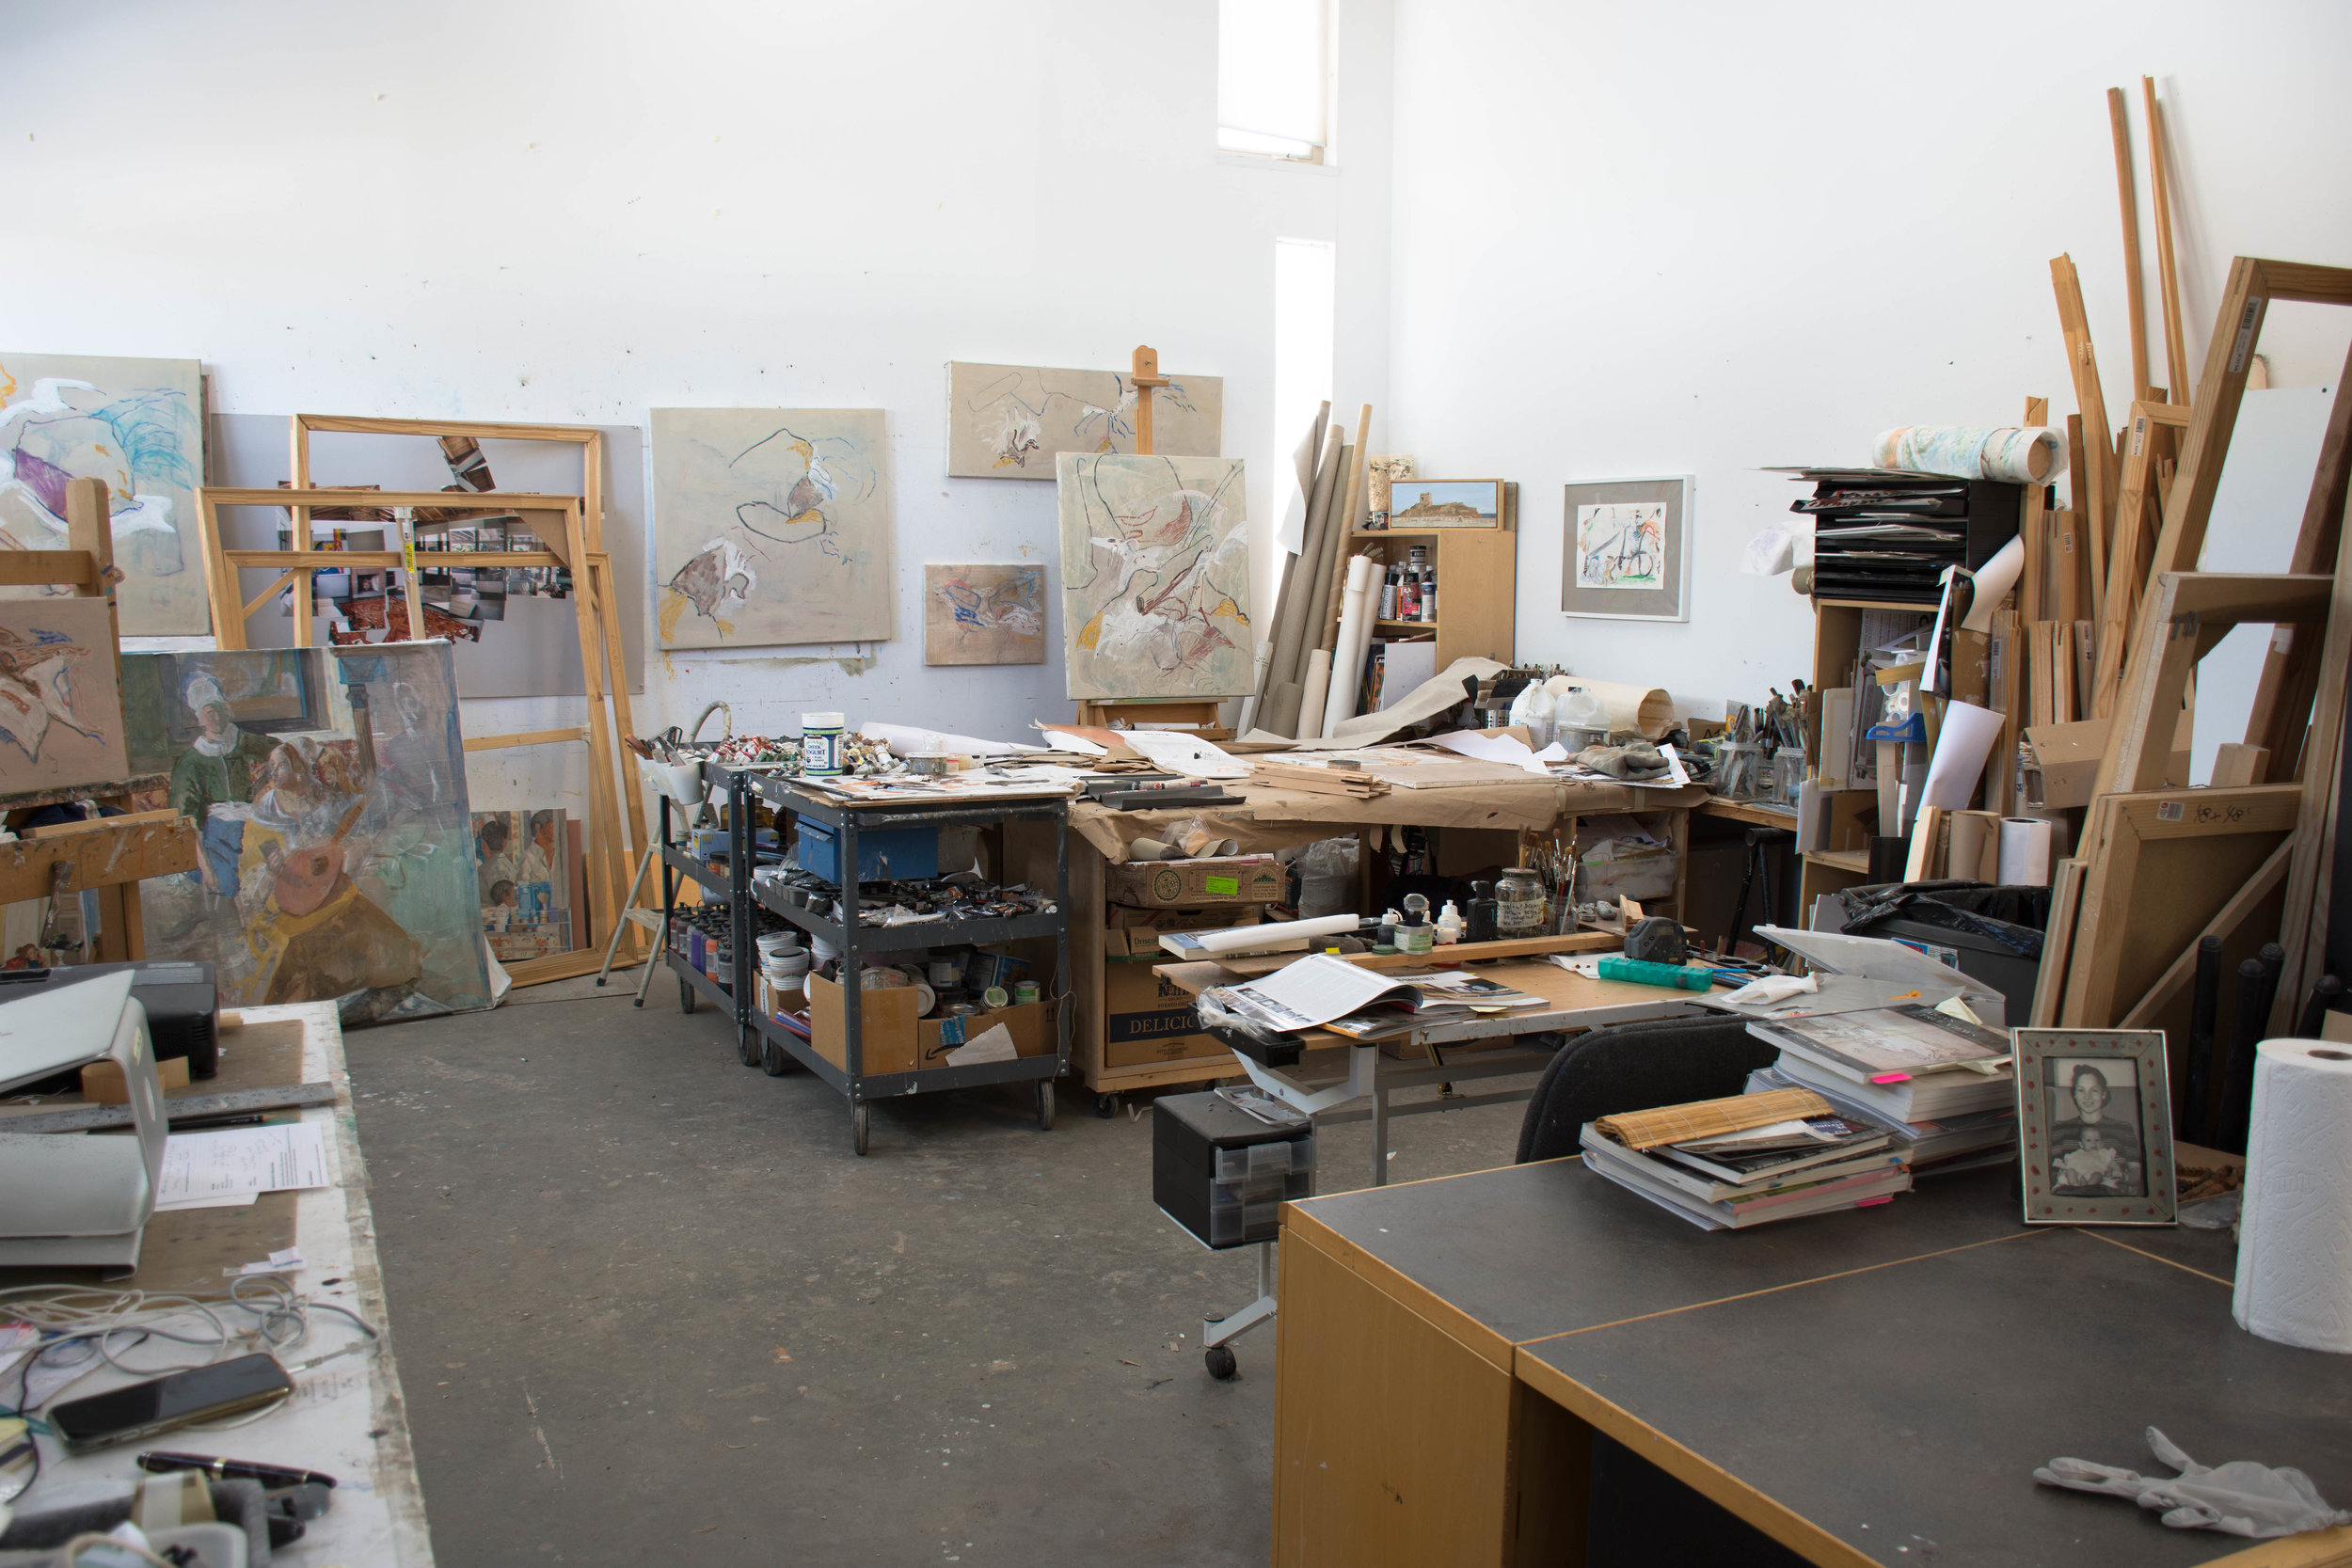 2-17-19 post cleanup studio.jpg